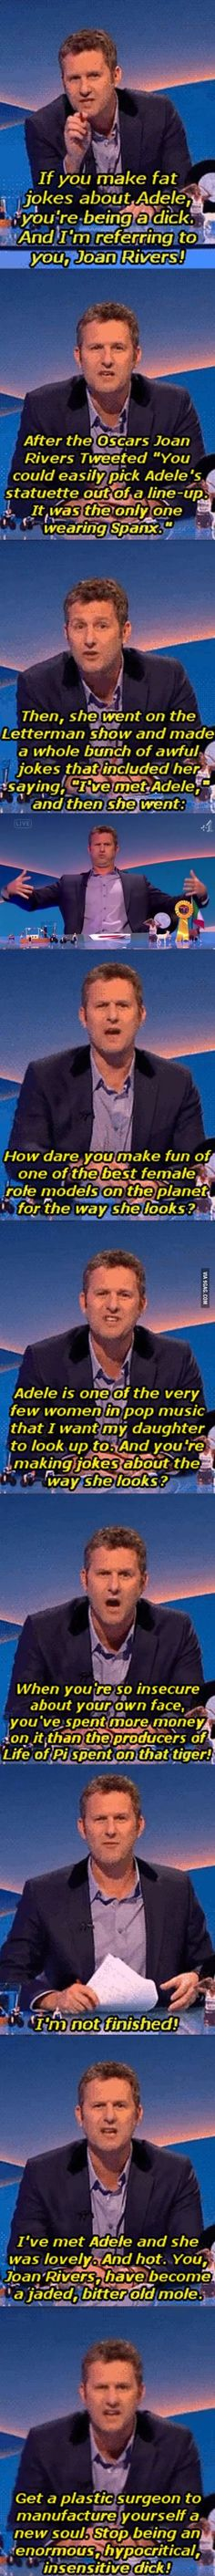 Comedian Destroys Joan Rivers Over Adele Comments... - 9GAG << PREACH.